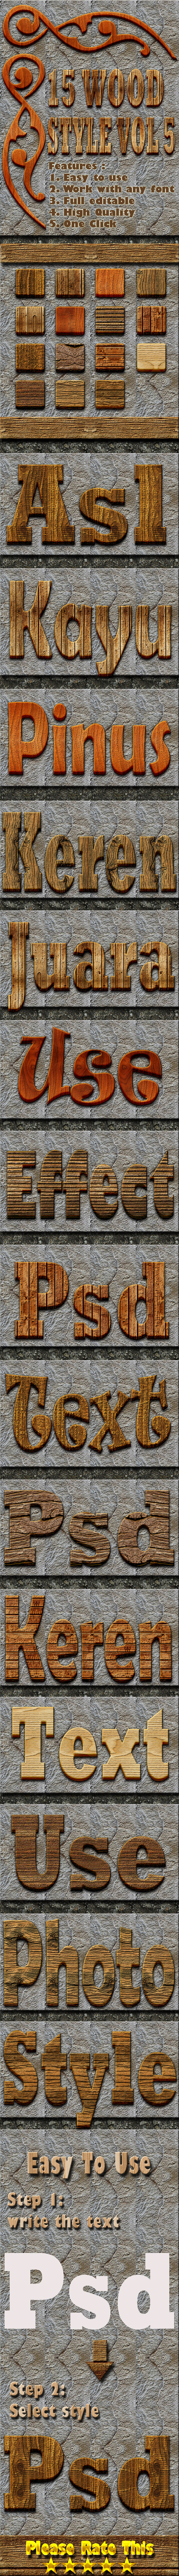 15 Wood Text Effect Style Vol 7